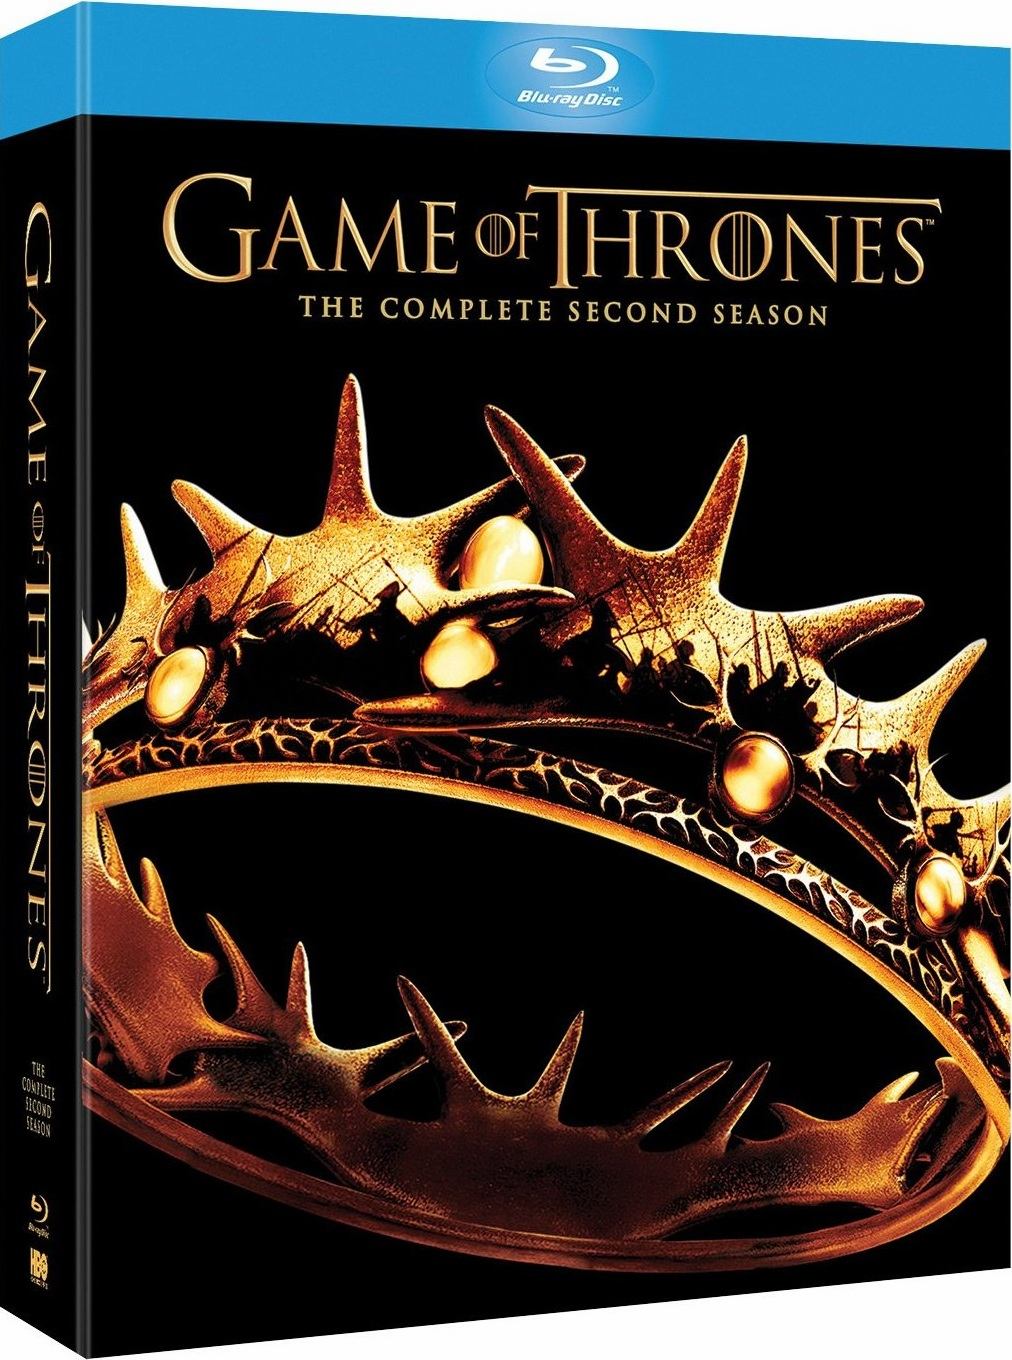 Game Of Thrones The Complete Second Season Blu-ray